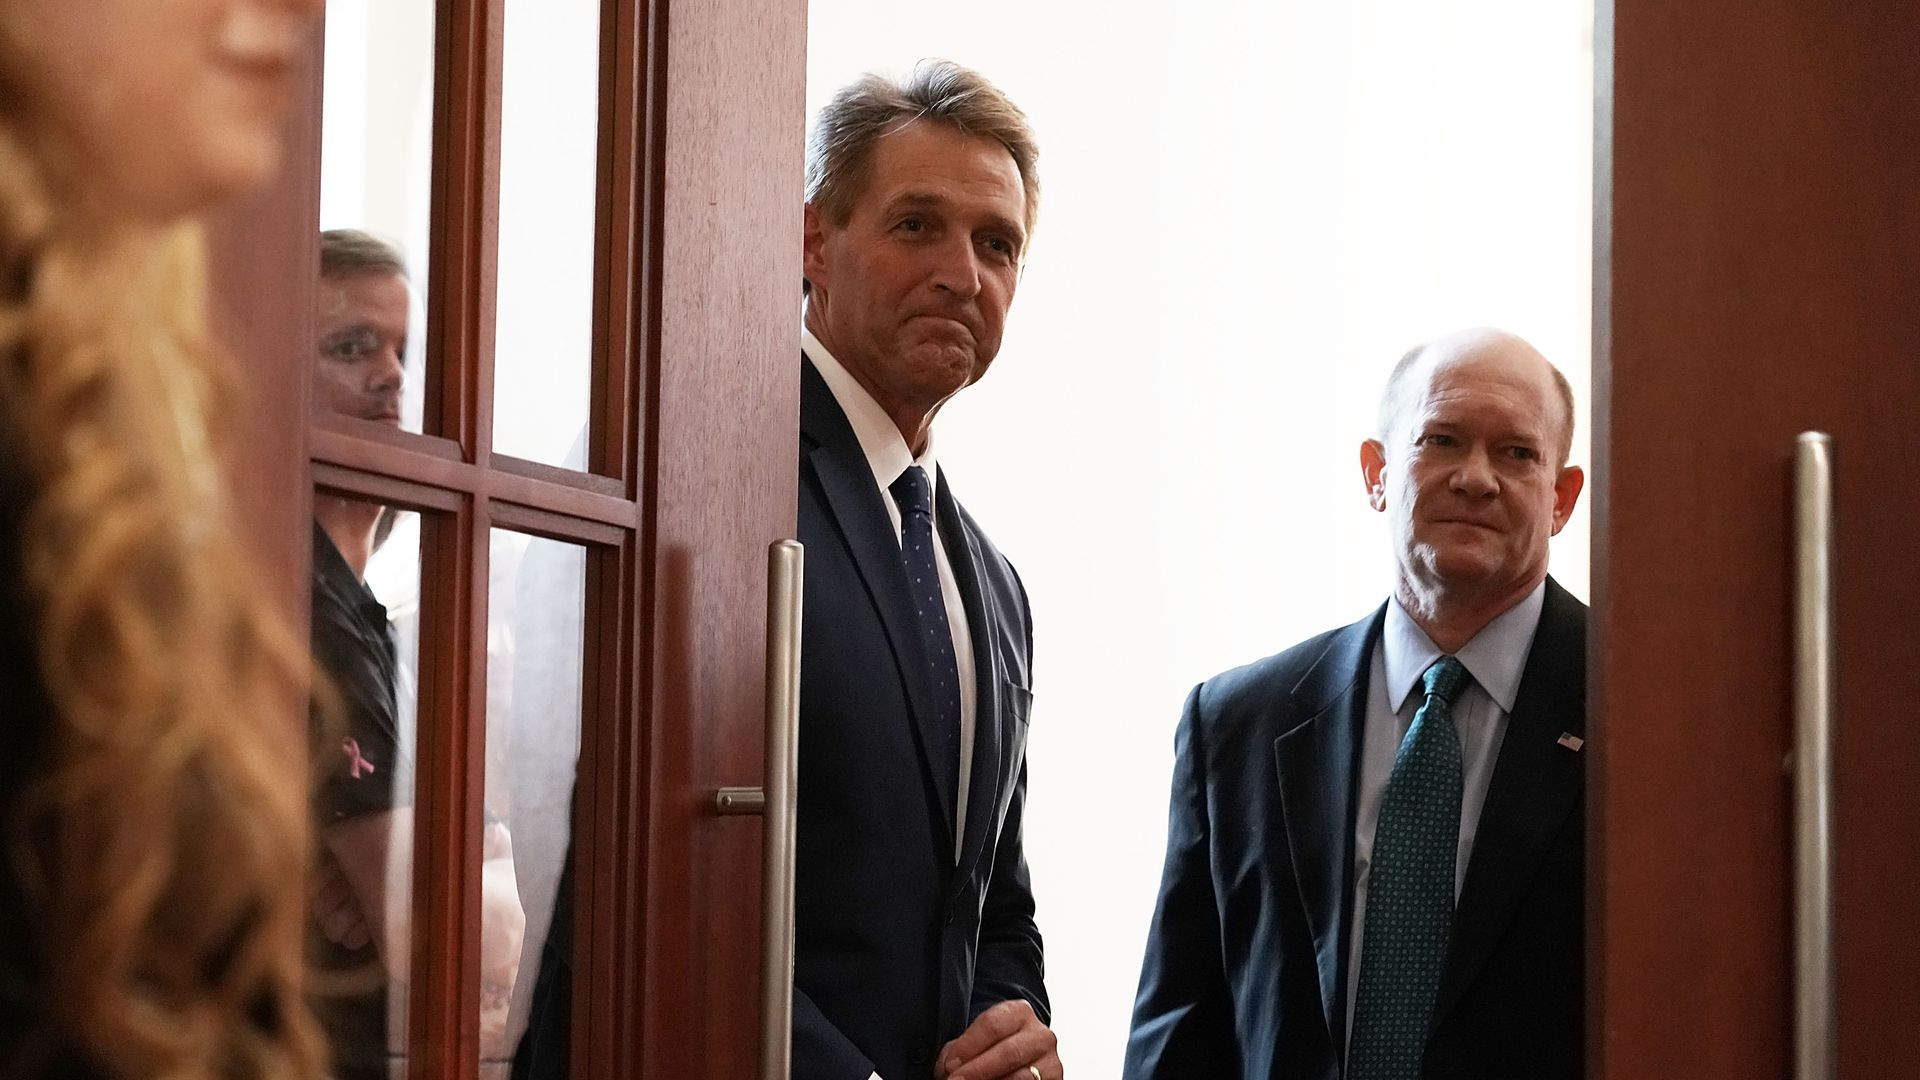 Senators Jeff Flake (R-Ariz.)  Chris Coons (D-De.) Photo: Alex Wong/Getty Images